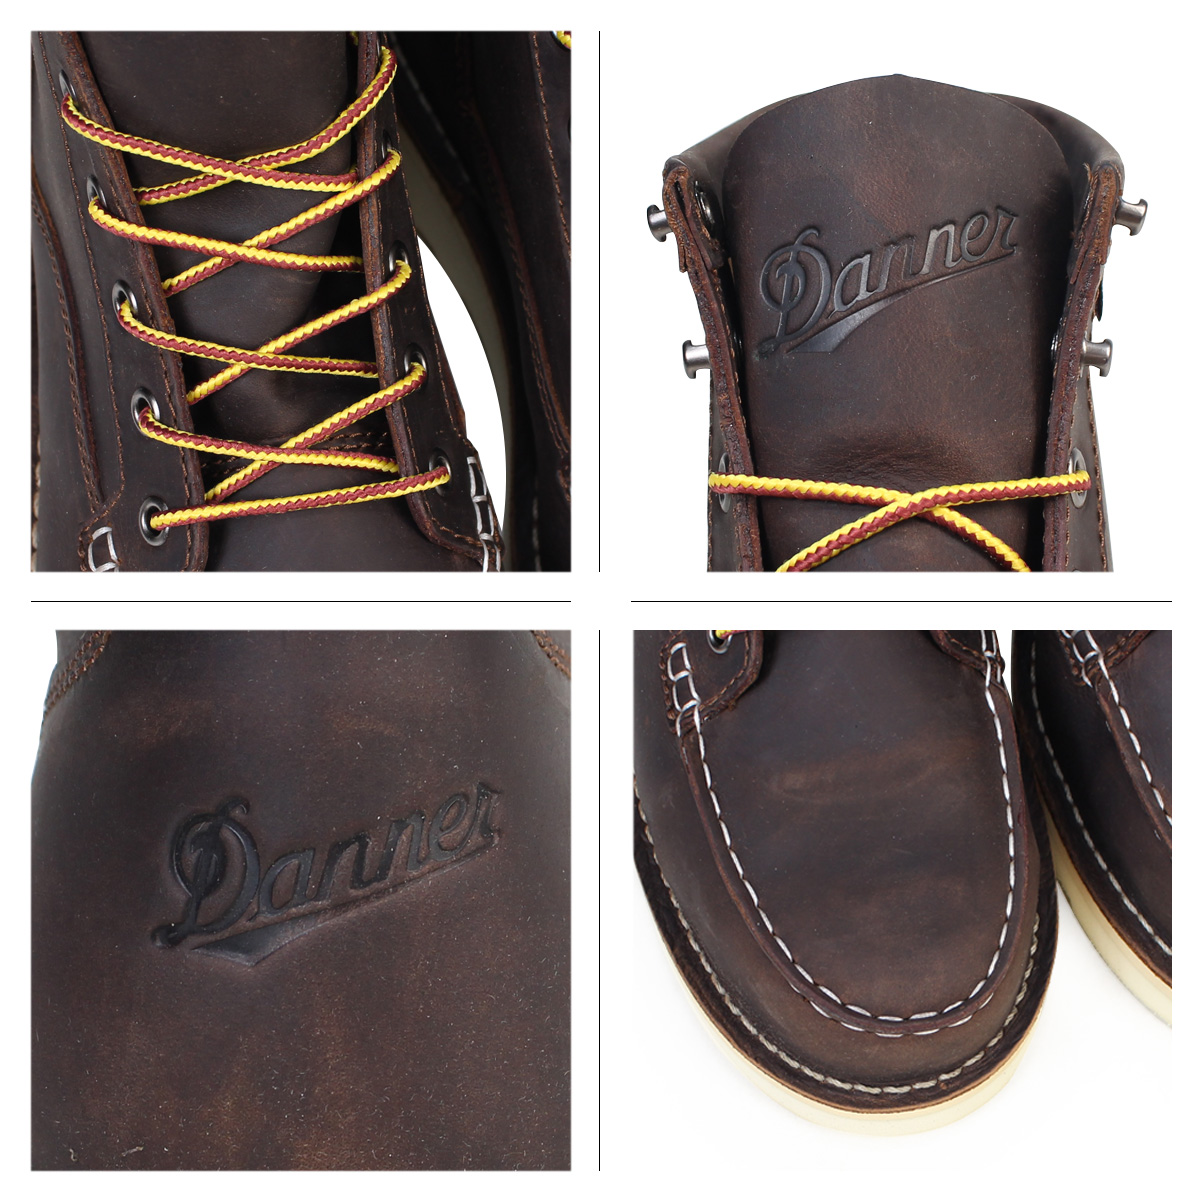 efeded49cc3c08 SneaK Online Shop  Danner Danner boots BULL RUN MOC TOE 6INCH 15564 ...